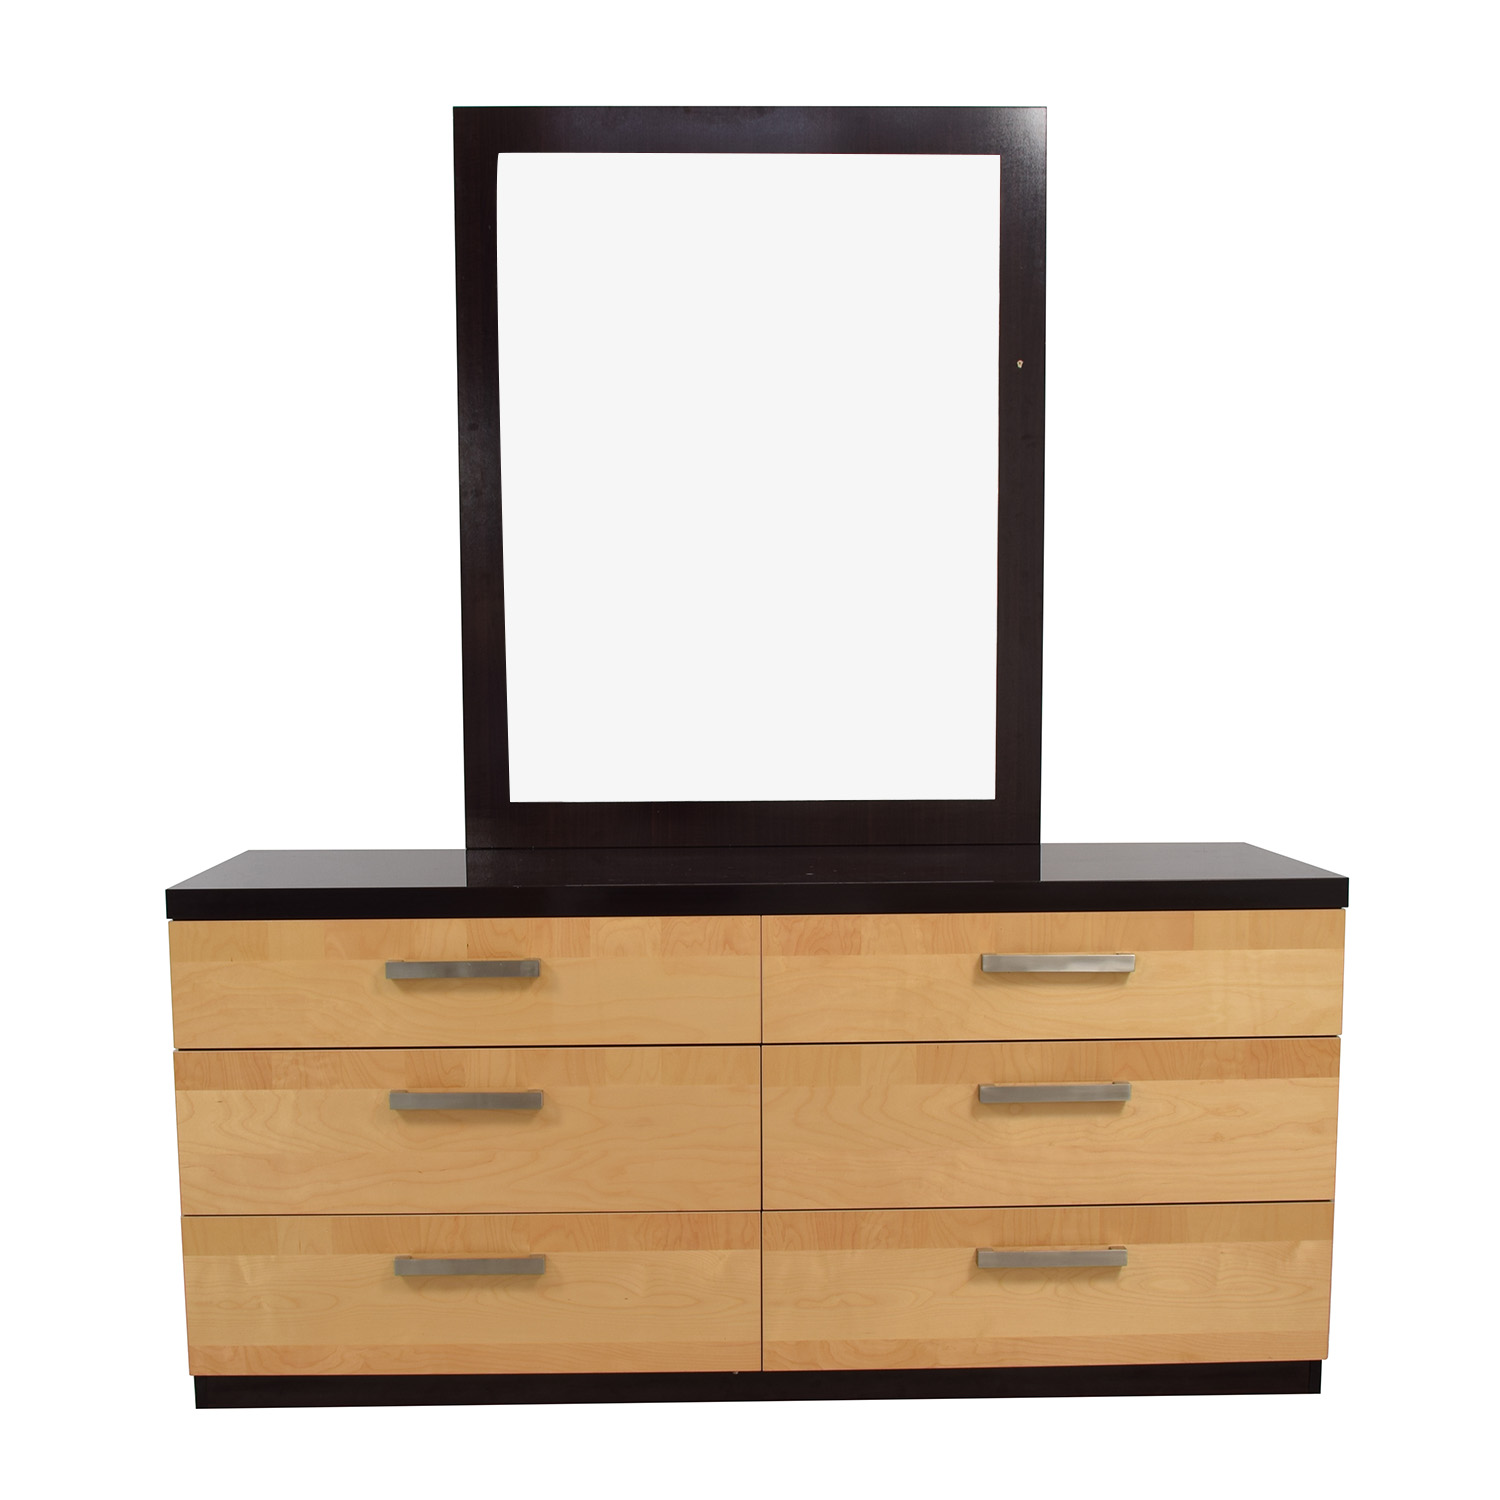 Design Group Design Group Italian Lacquered Six-Drawer Dresser with Mirror on sale